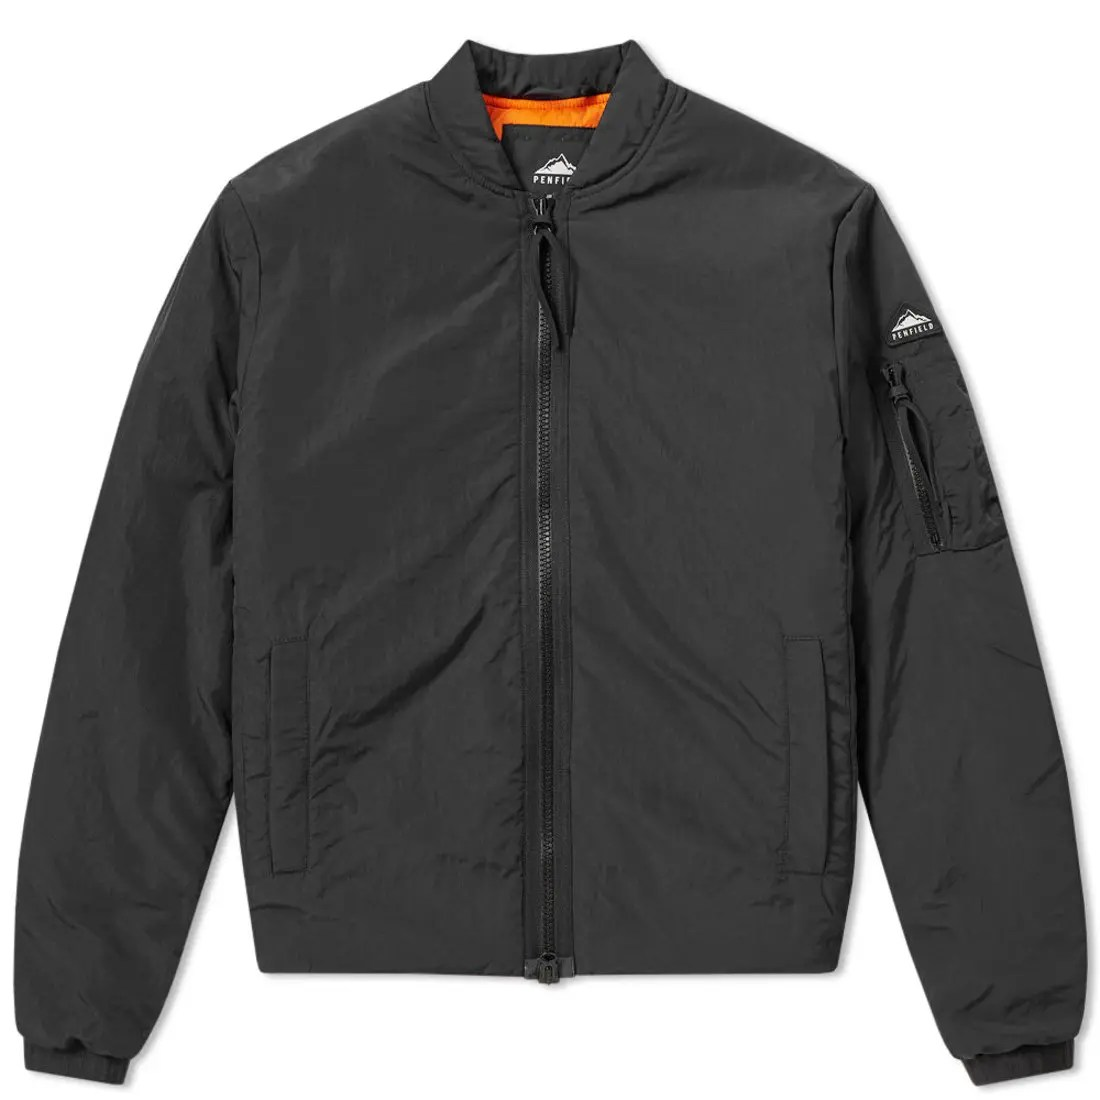 20-11-2017_penfield_cirrusprimaloftbomberjacket_black_pfm112134118-001_th_1